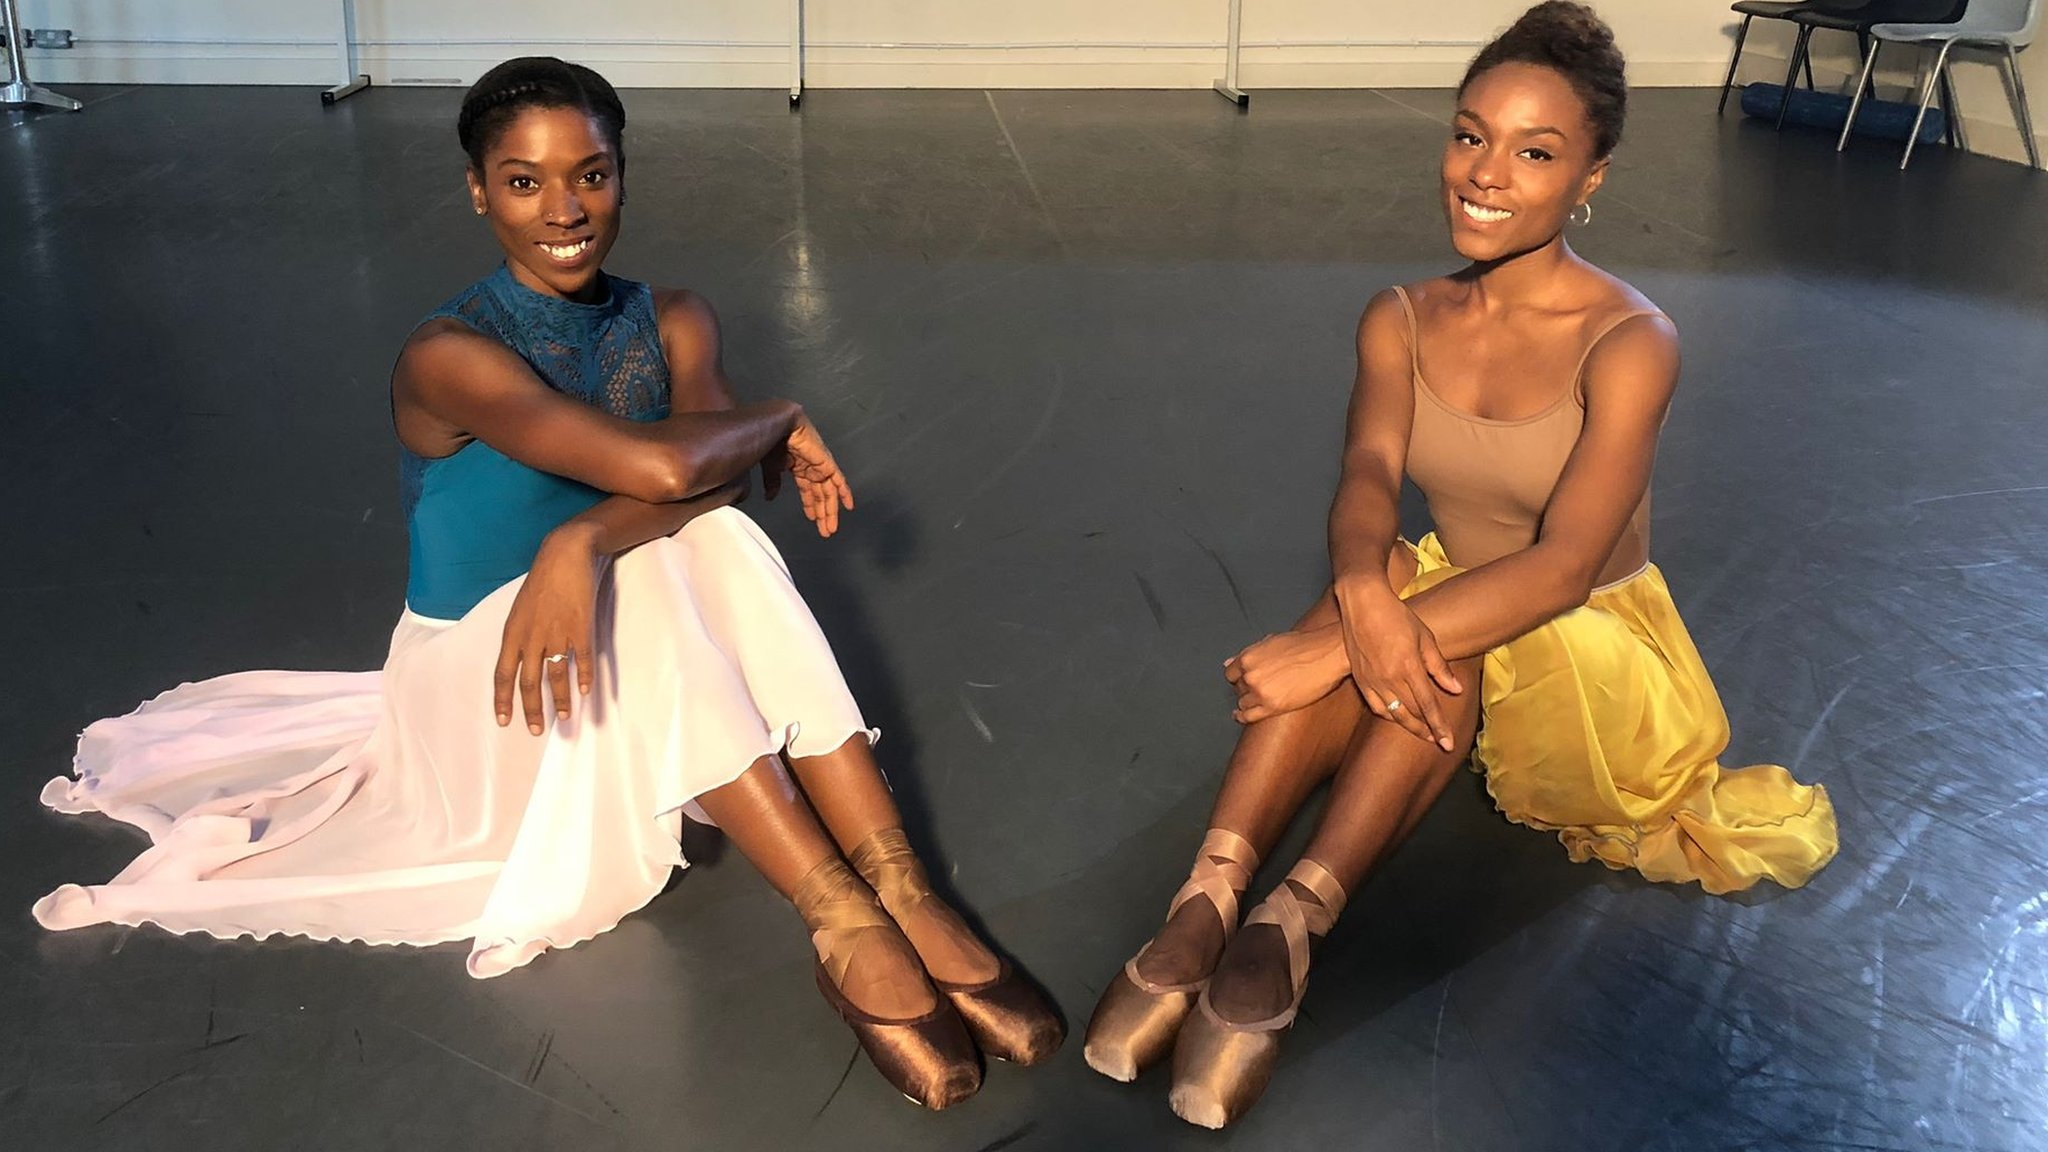 Ballet Black help create shoes for non-white dancers